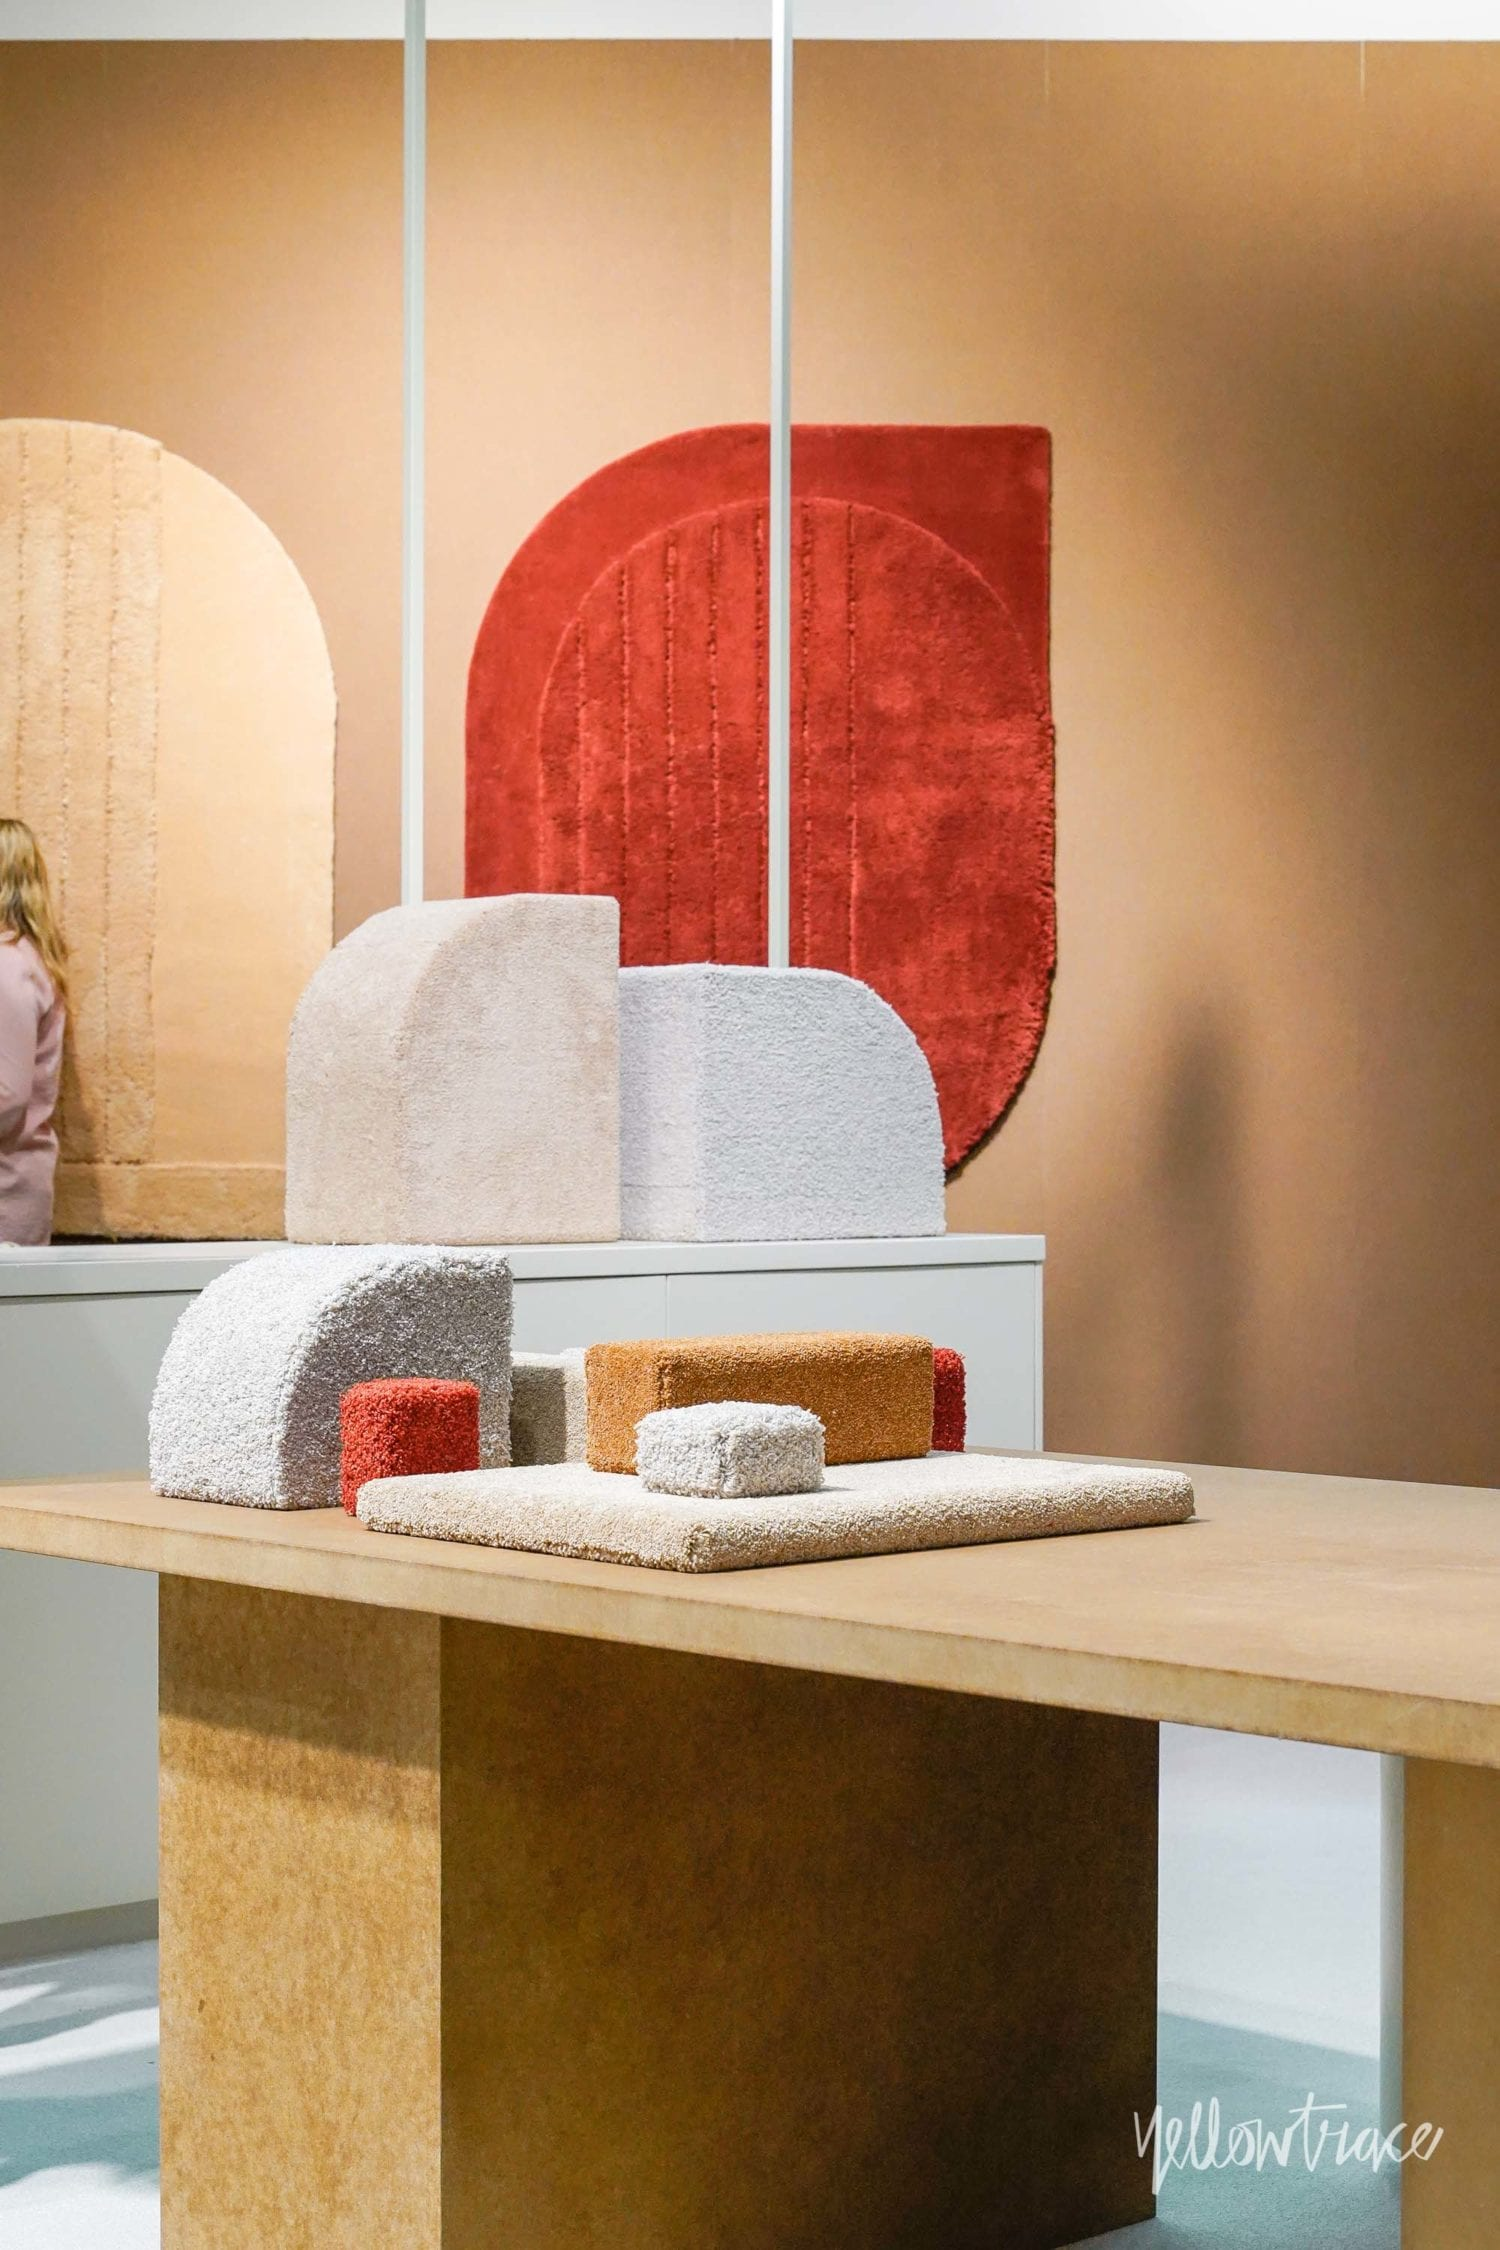 Best Of Stockholm Design Week 2019. Photo by Nick Hughes | Yellowtrace